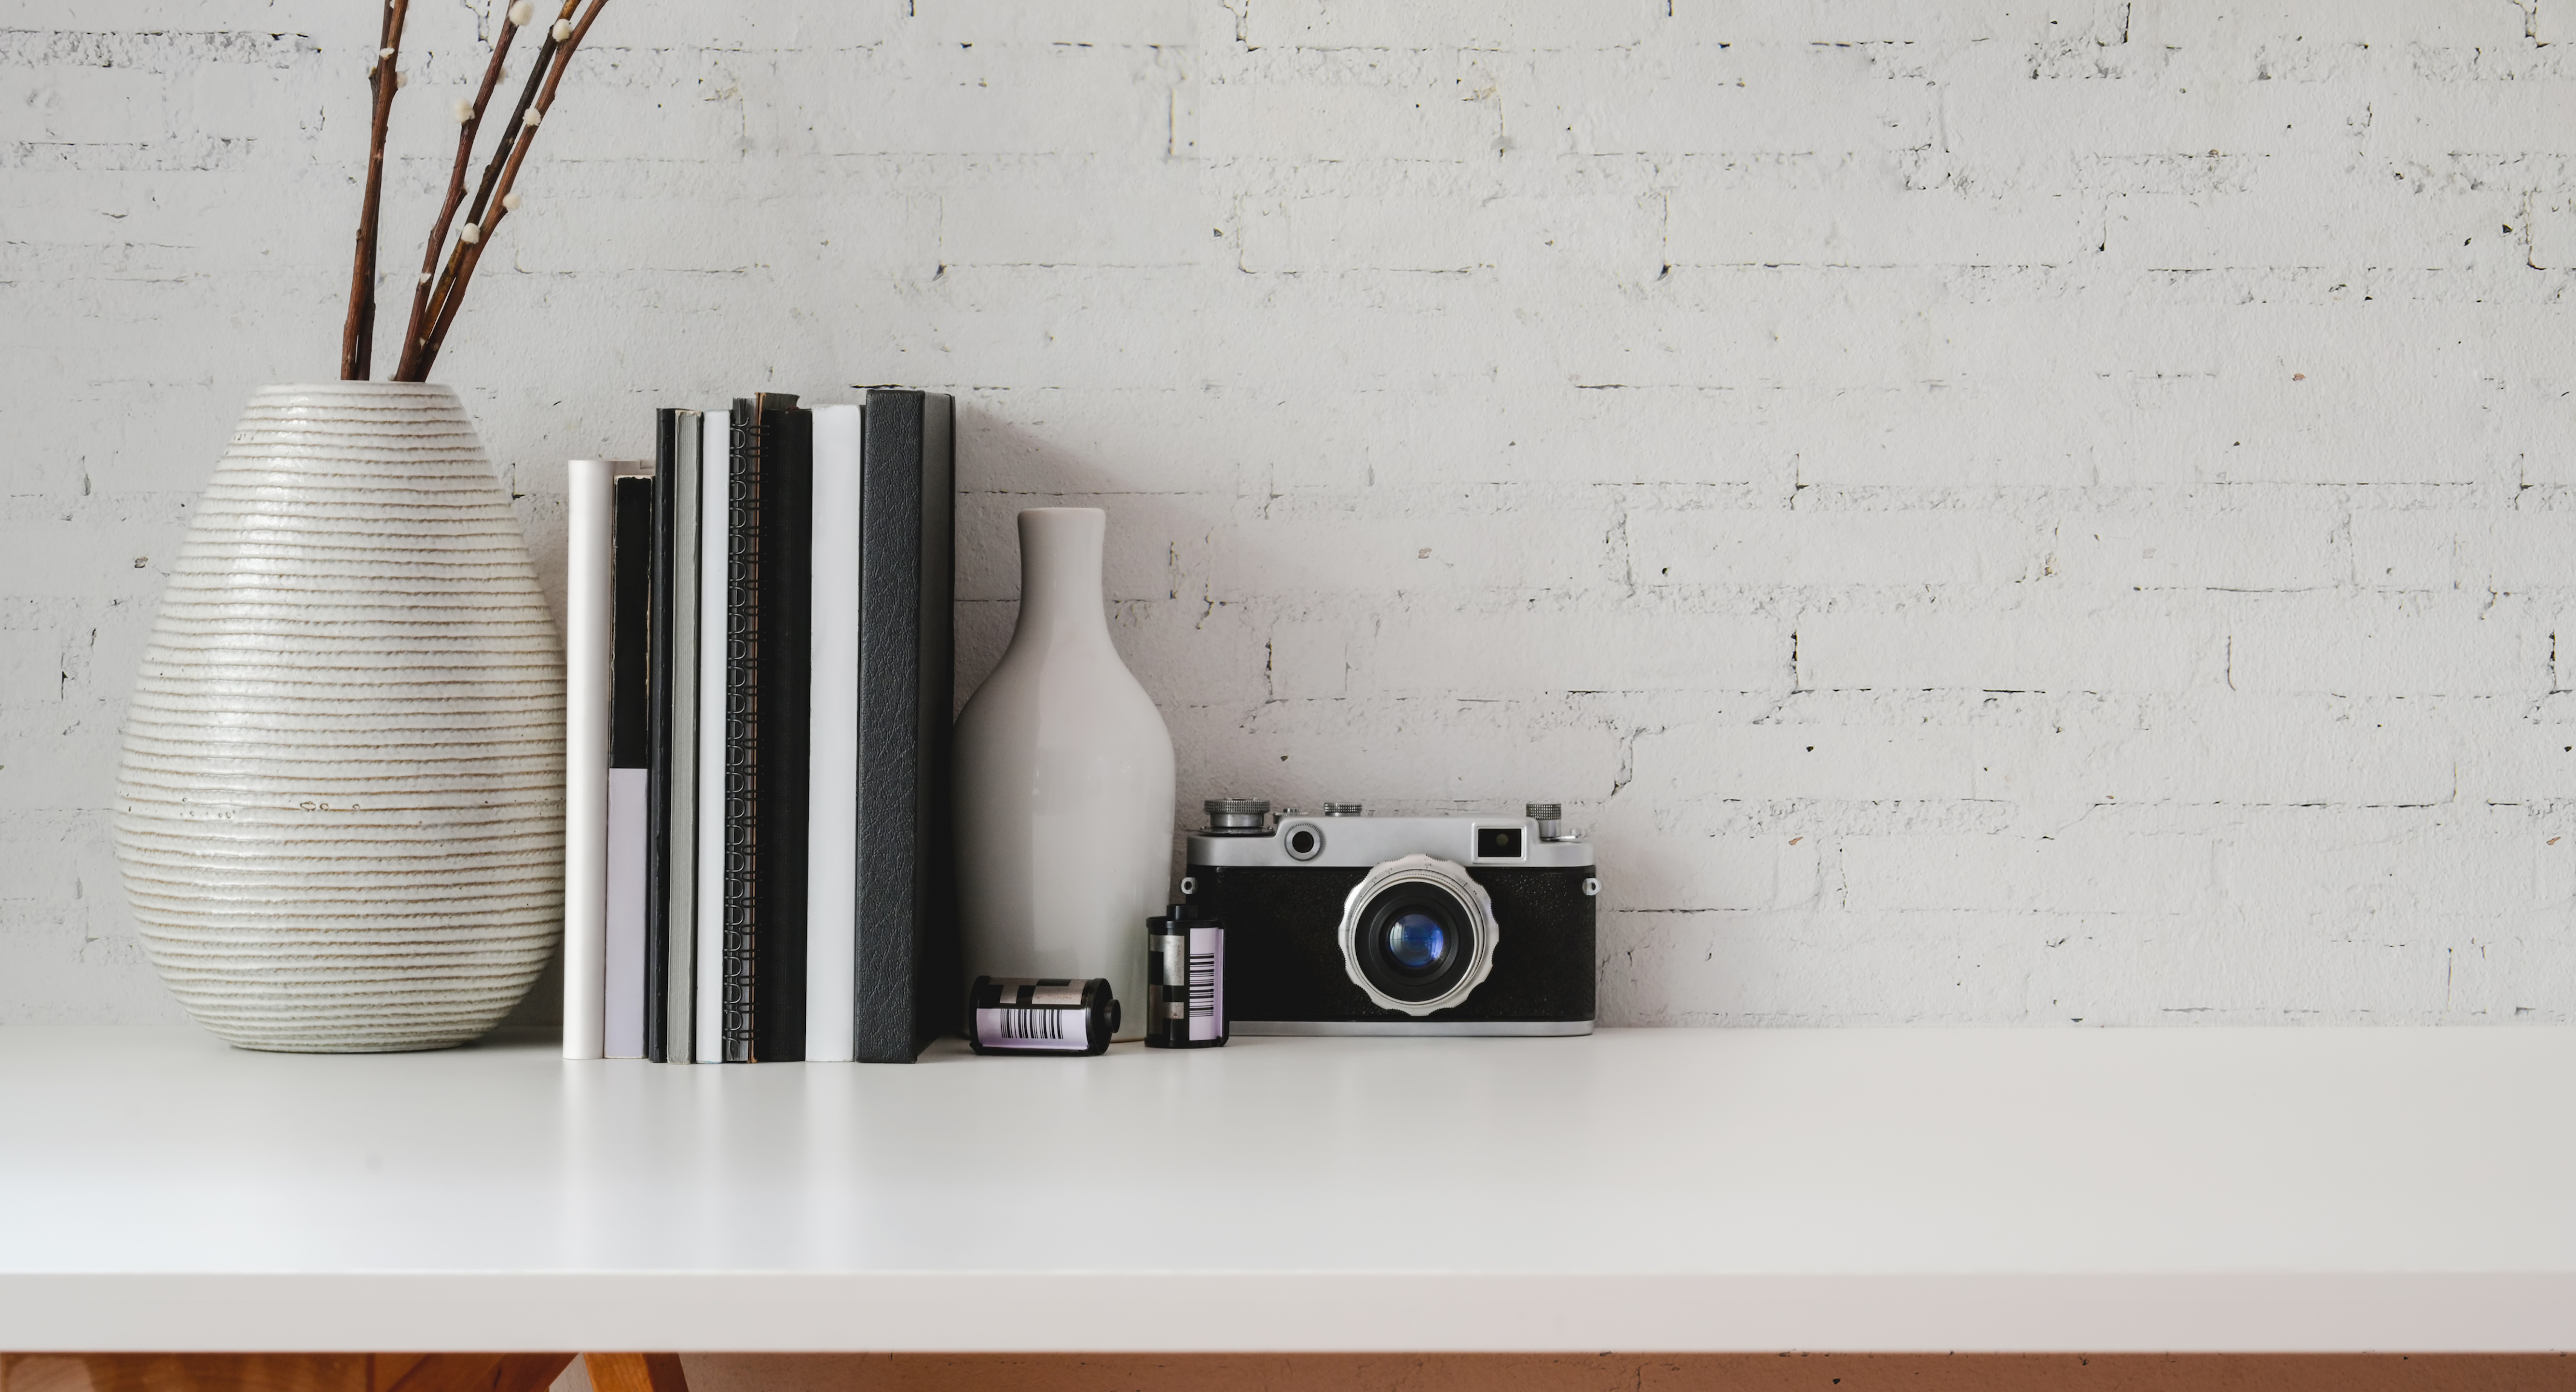 Minimal workplace with office supplies and copy space on white table and white brick wall background